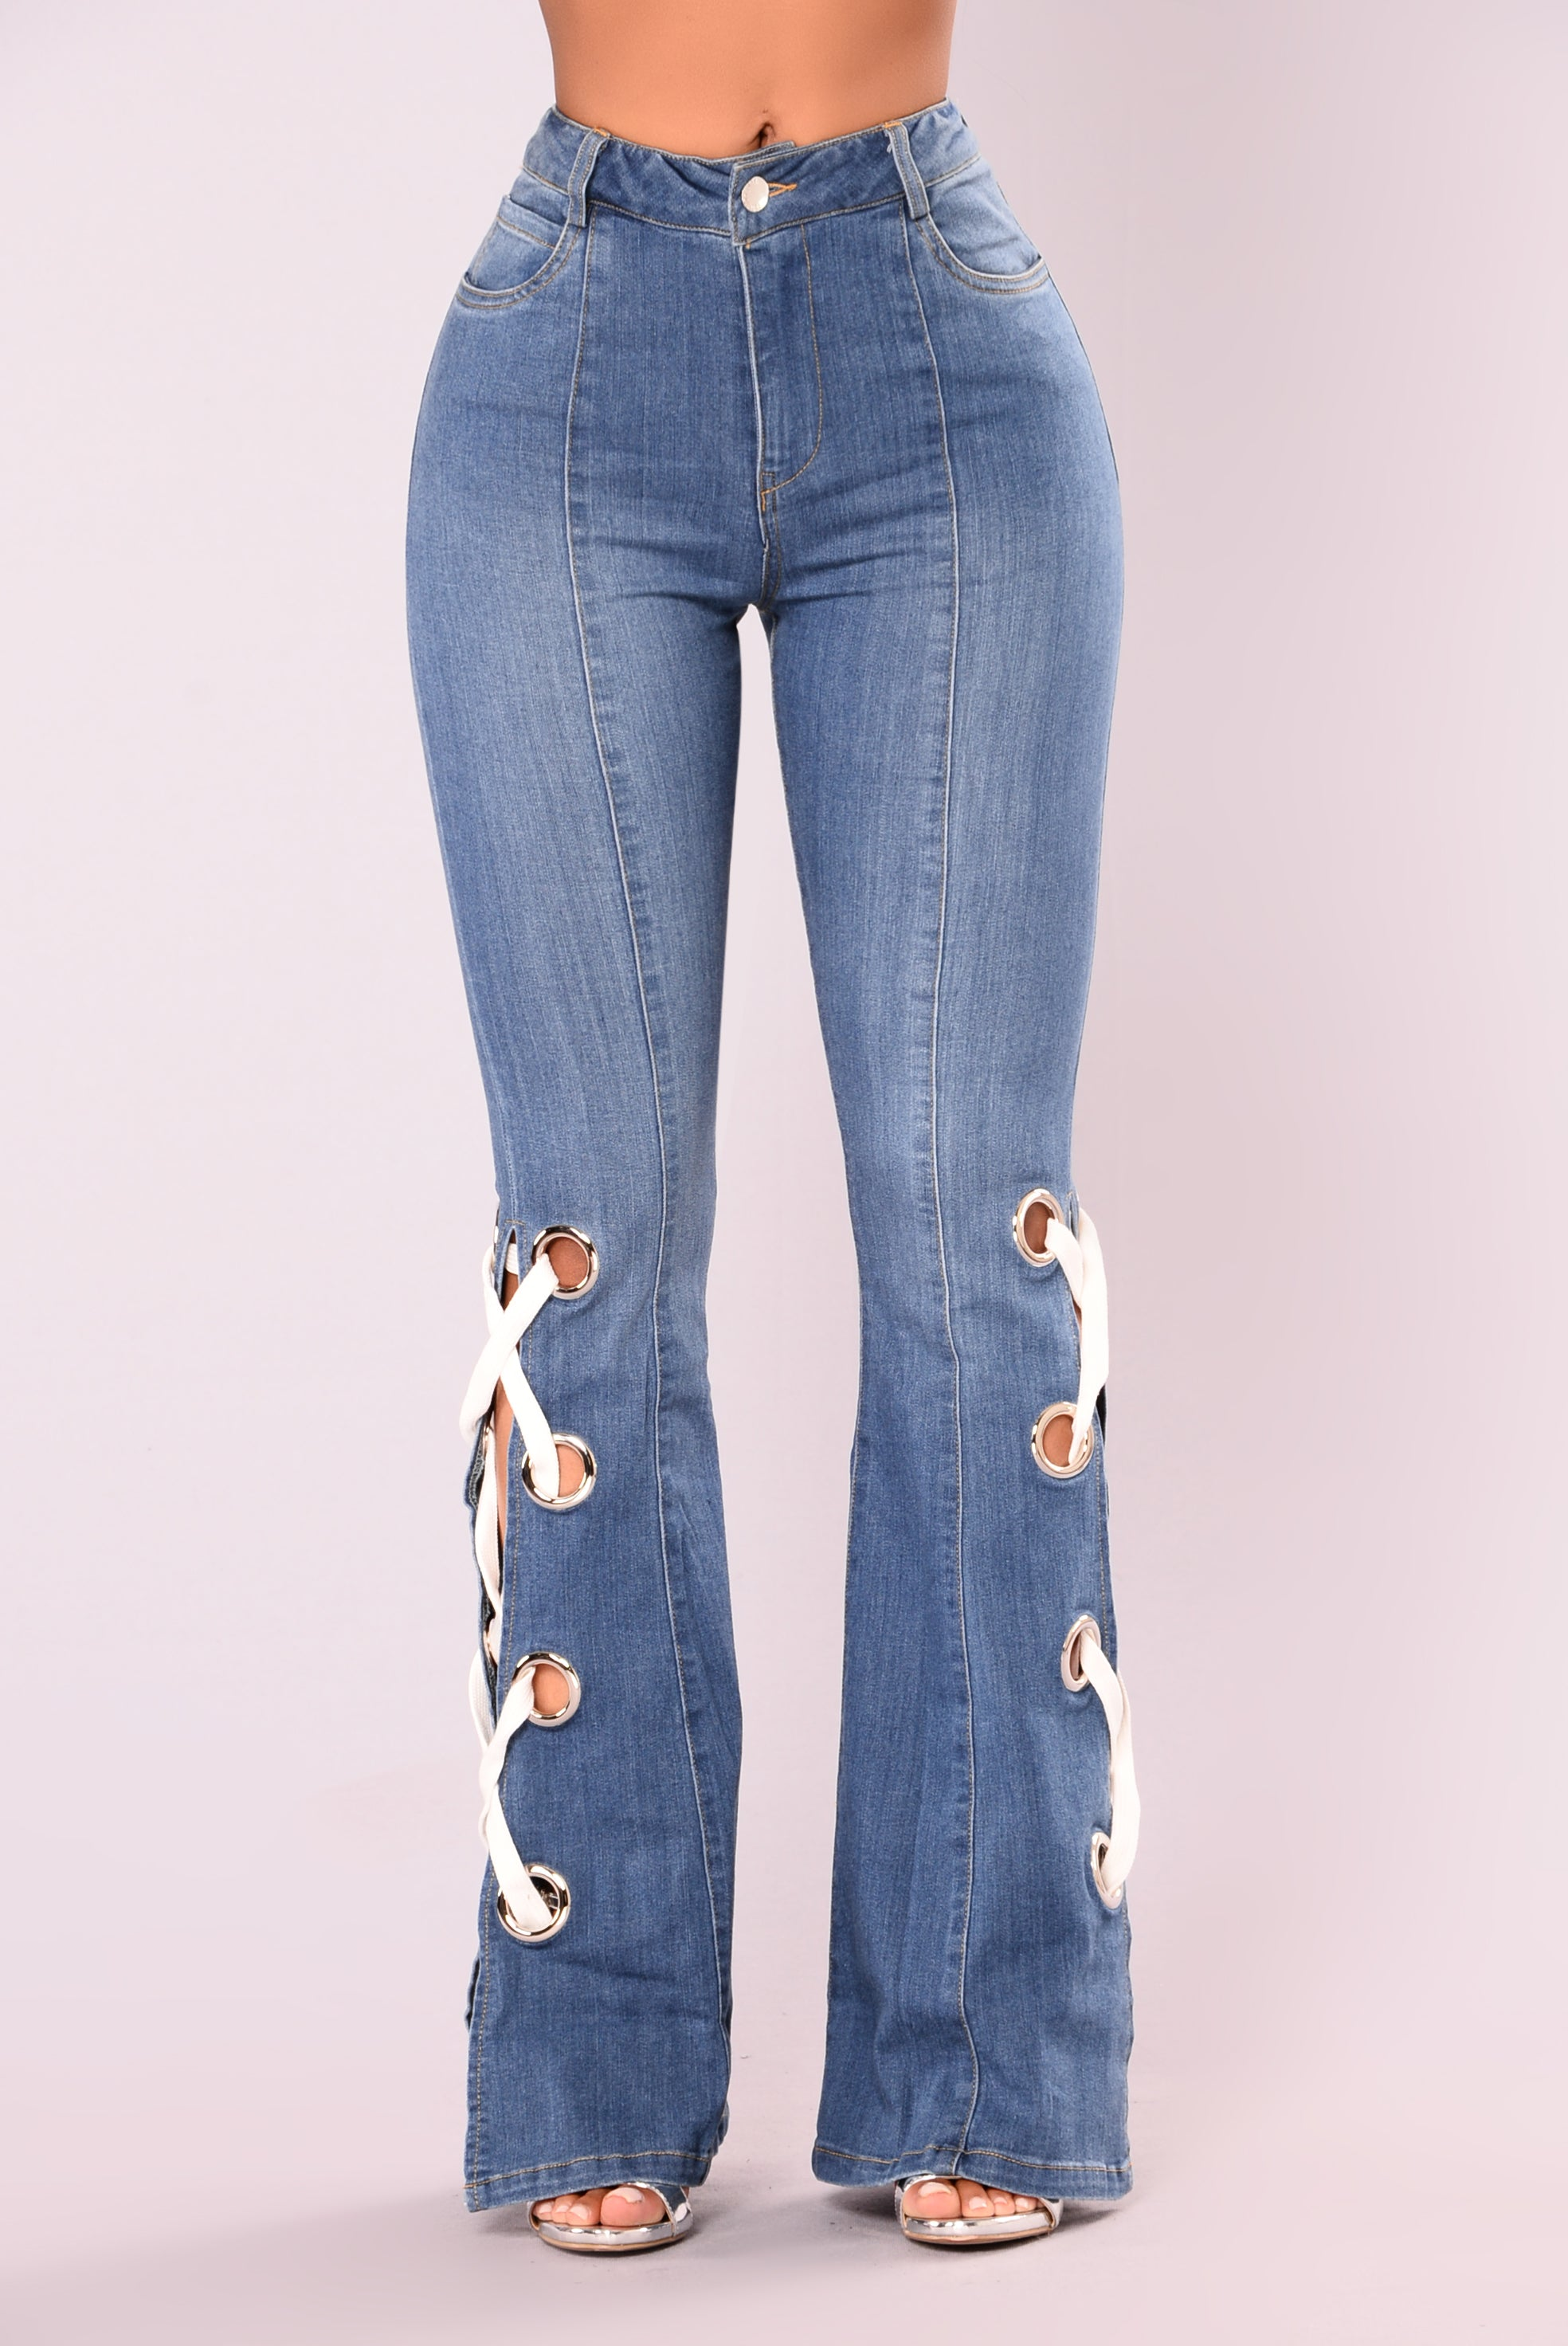 Ring My Bell Bottom Jeans